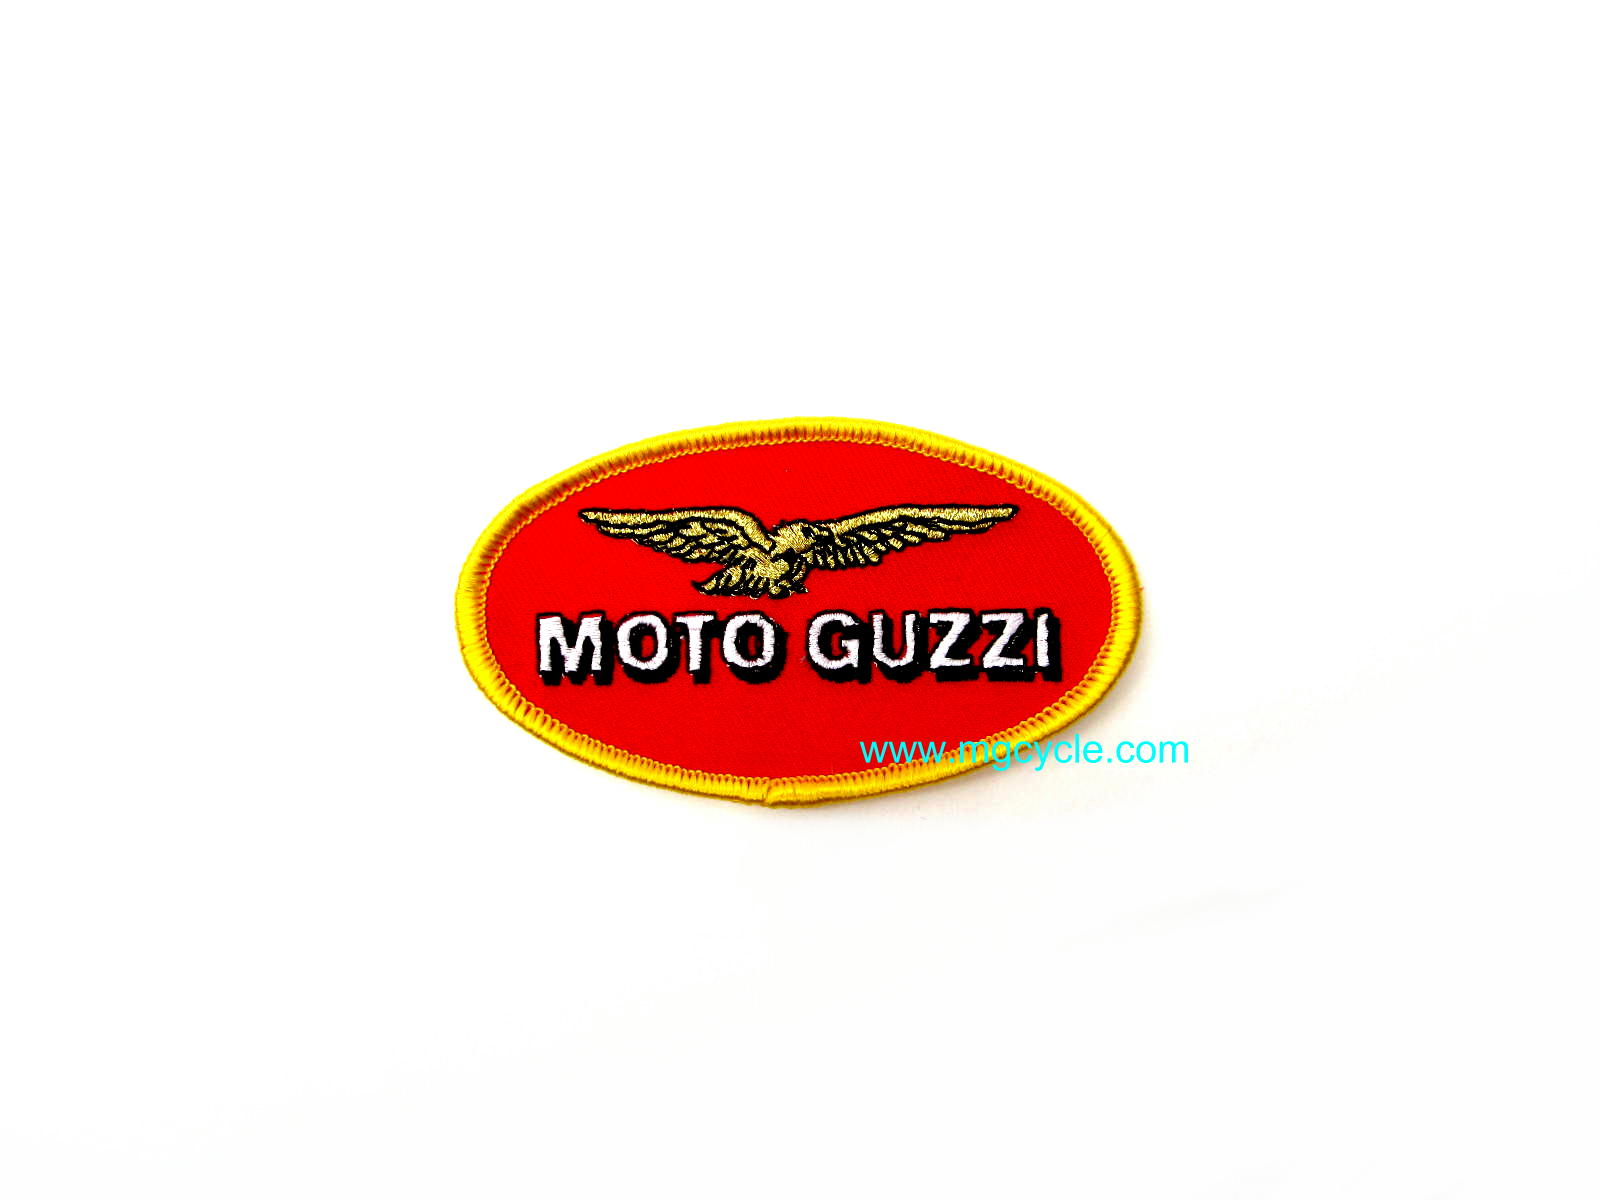 Small oval patch, Moto Guzzi red oval gold trim